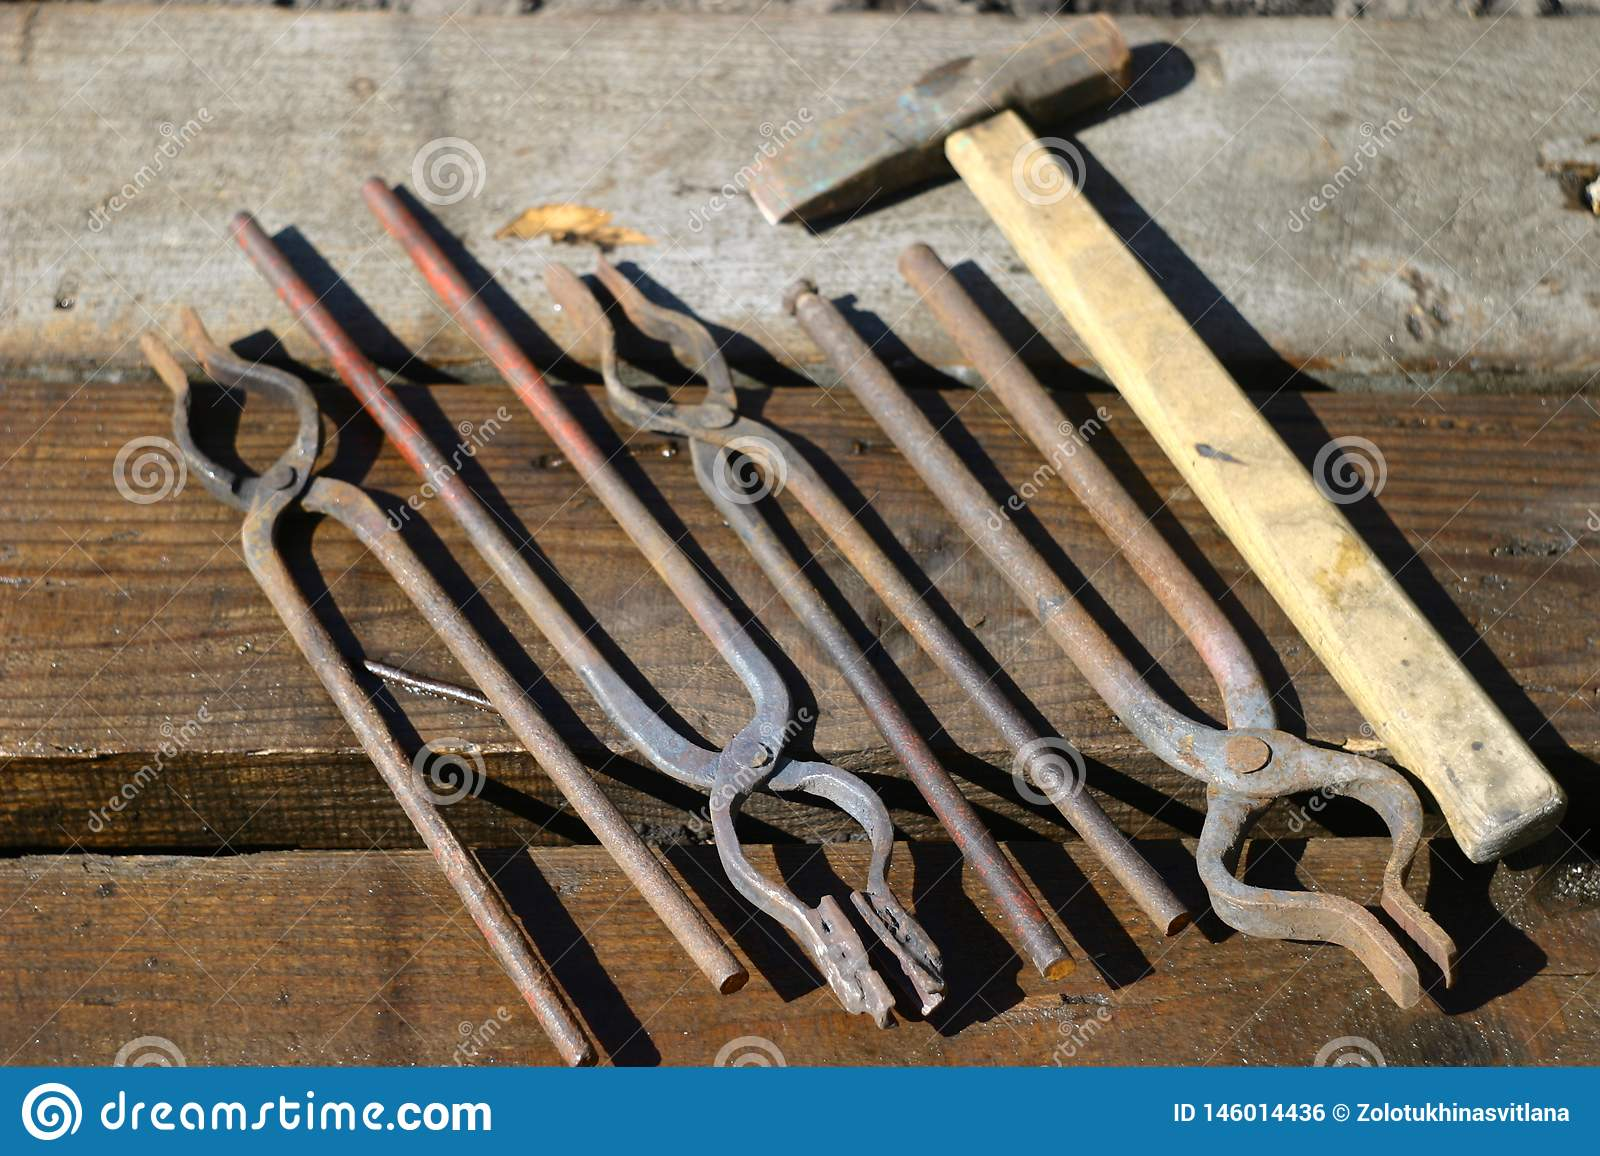 Working Tools For The Blacksmith  Stock Photo - Image of blacksmith